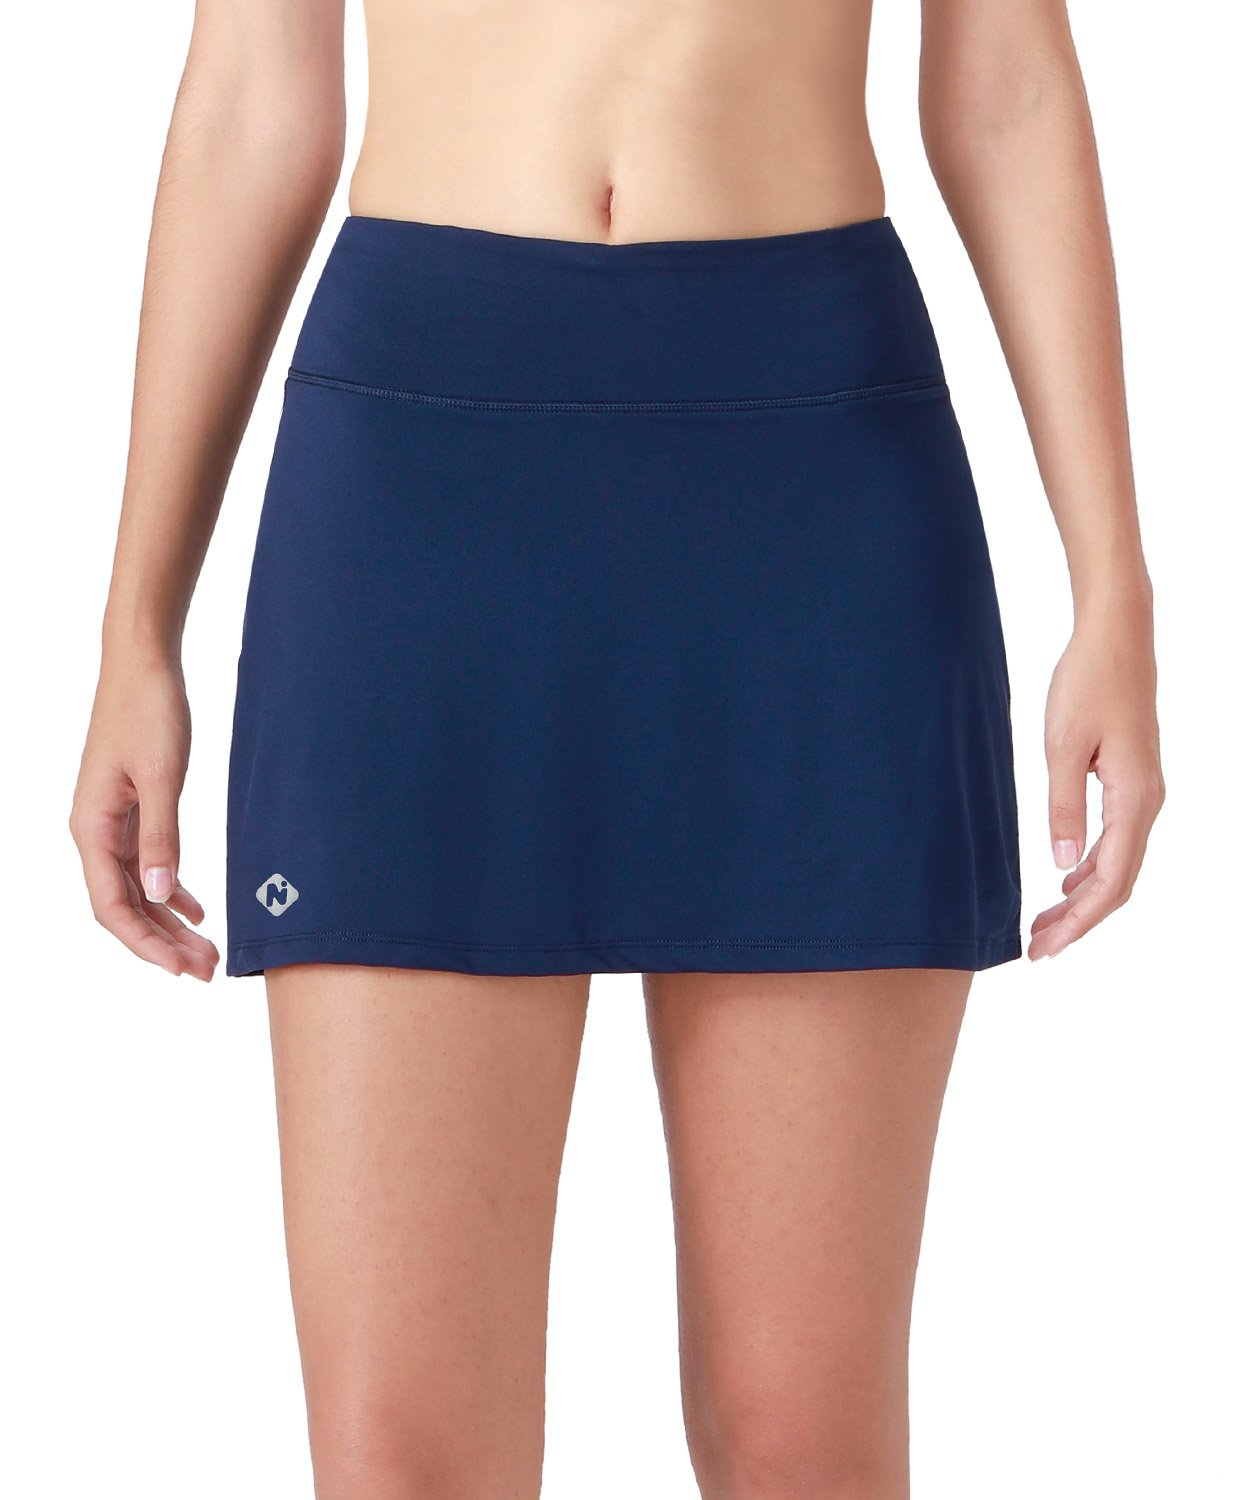 Naviskin Women's Active Athletic Skort Lightweight Skirt with Pockets Inner Shorts Perfect for Running Golf Tennis Workout Casual Use Navy Size S by Naviskin